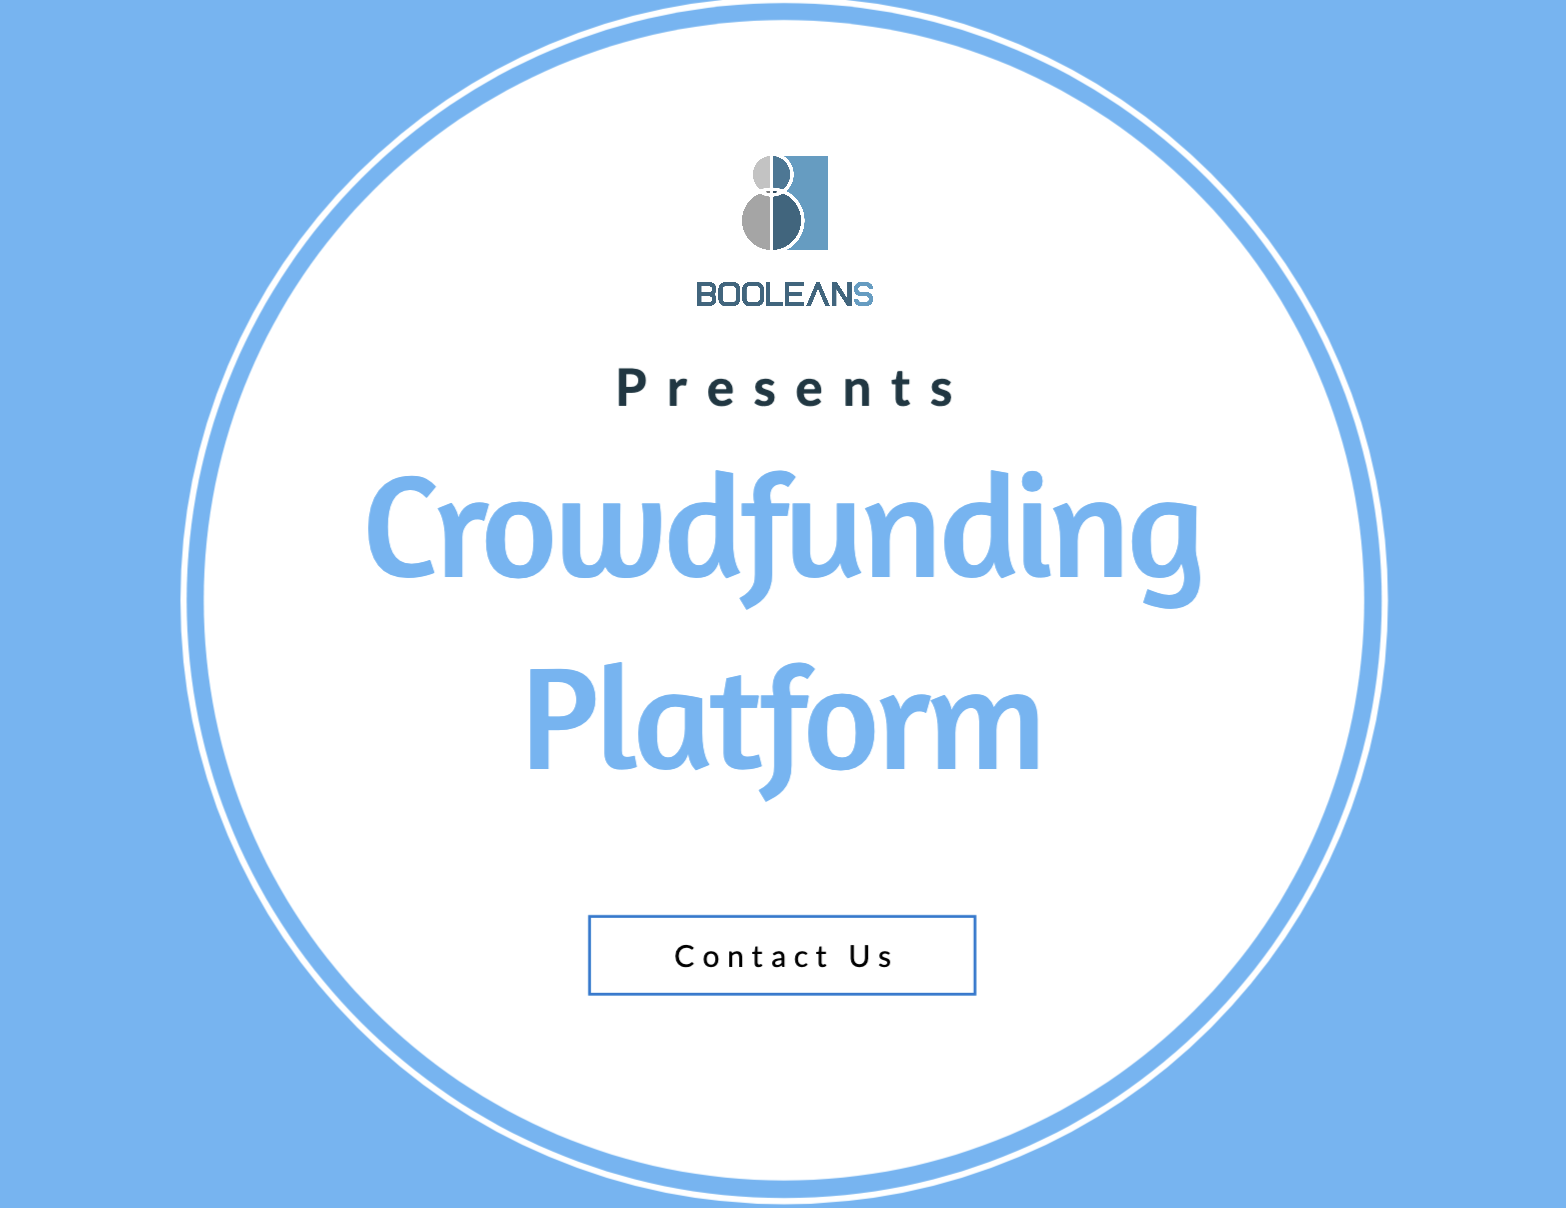 Boolean Solutions Crowdfunding Platform